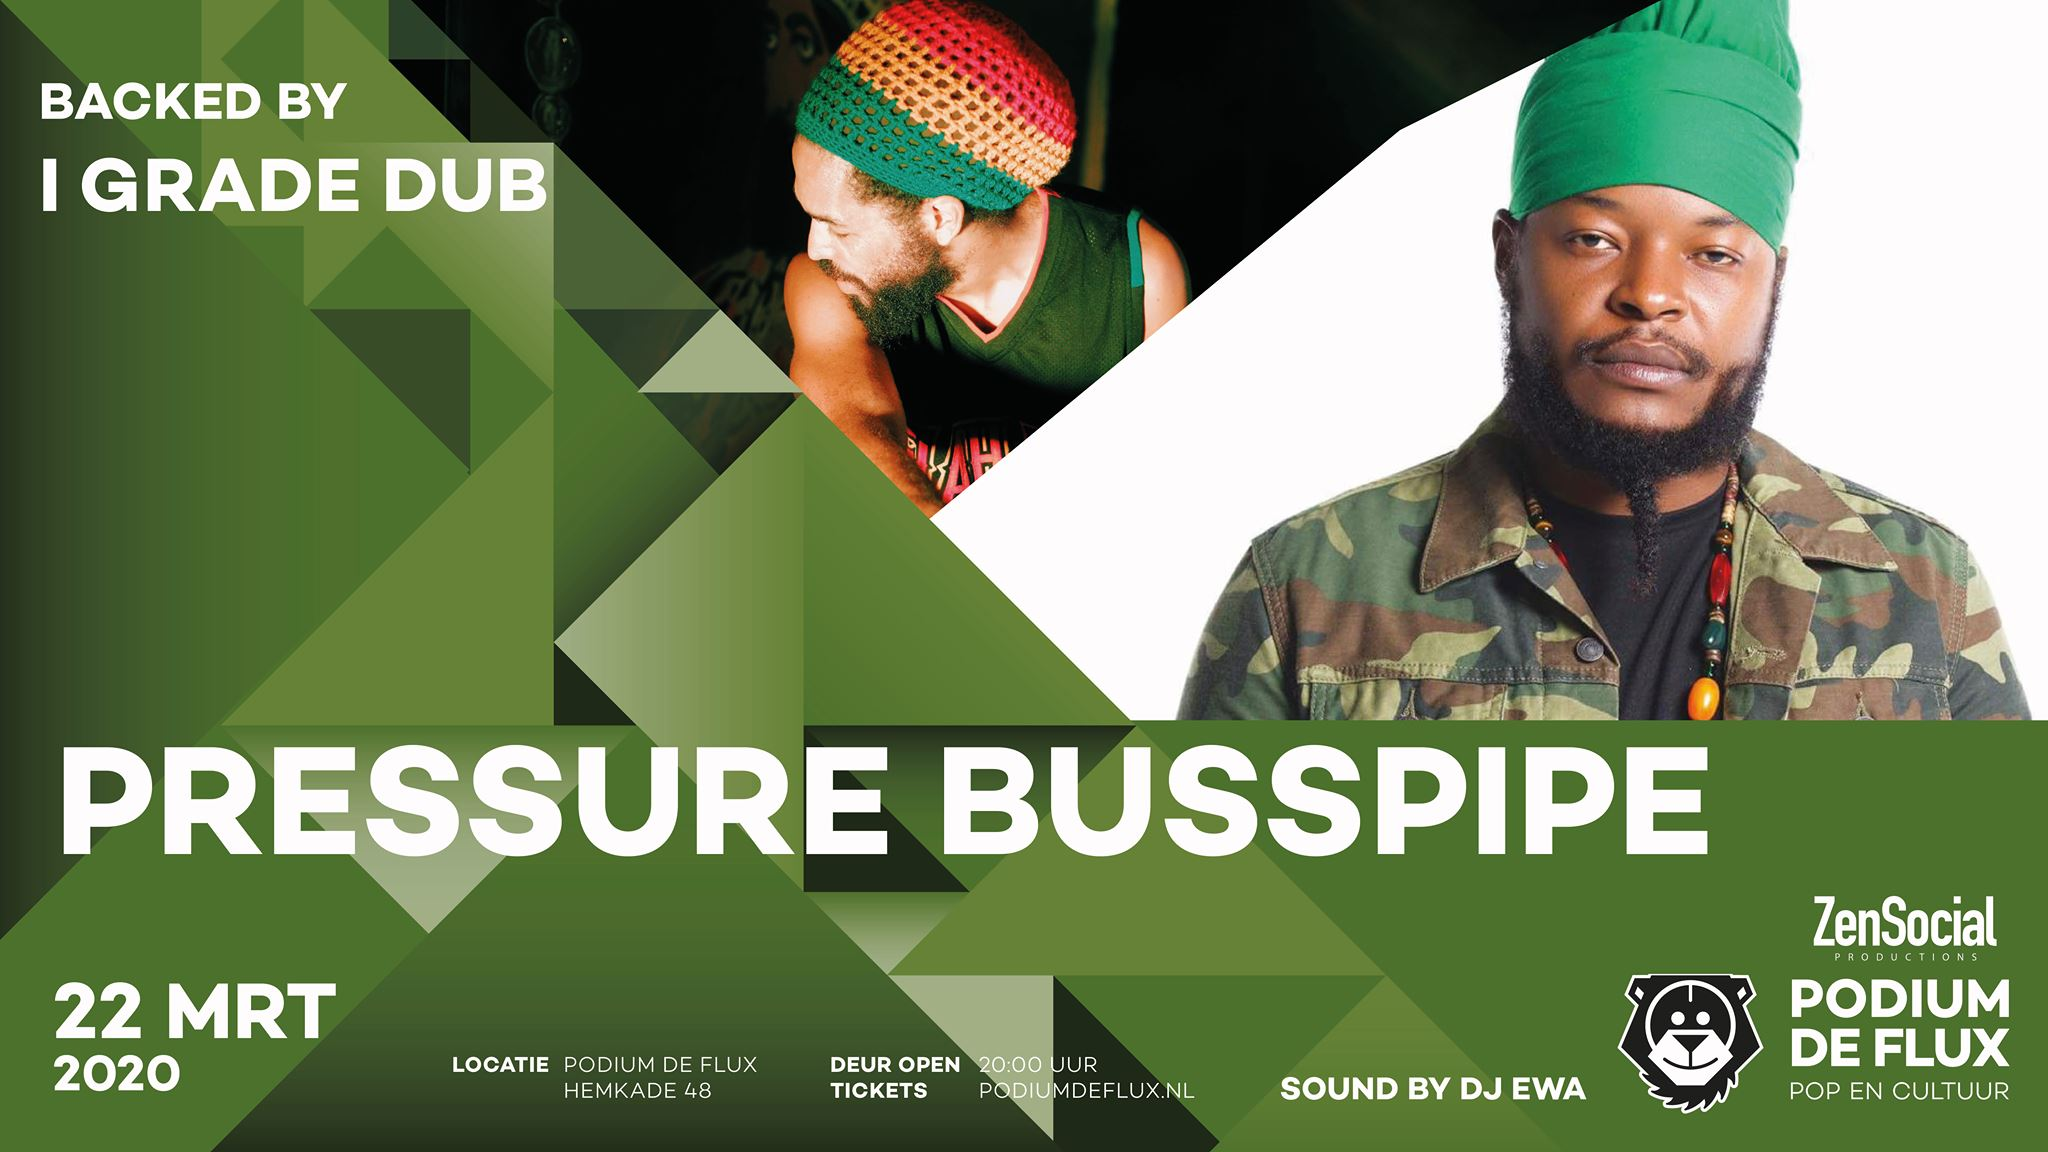 Pressure Busspipe backed by I Grade Dub | Podium de Flux